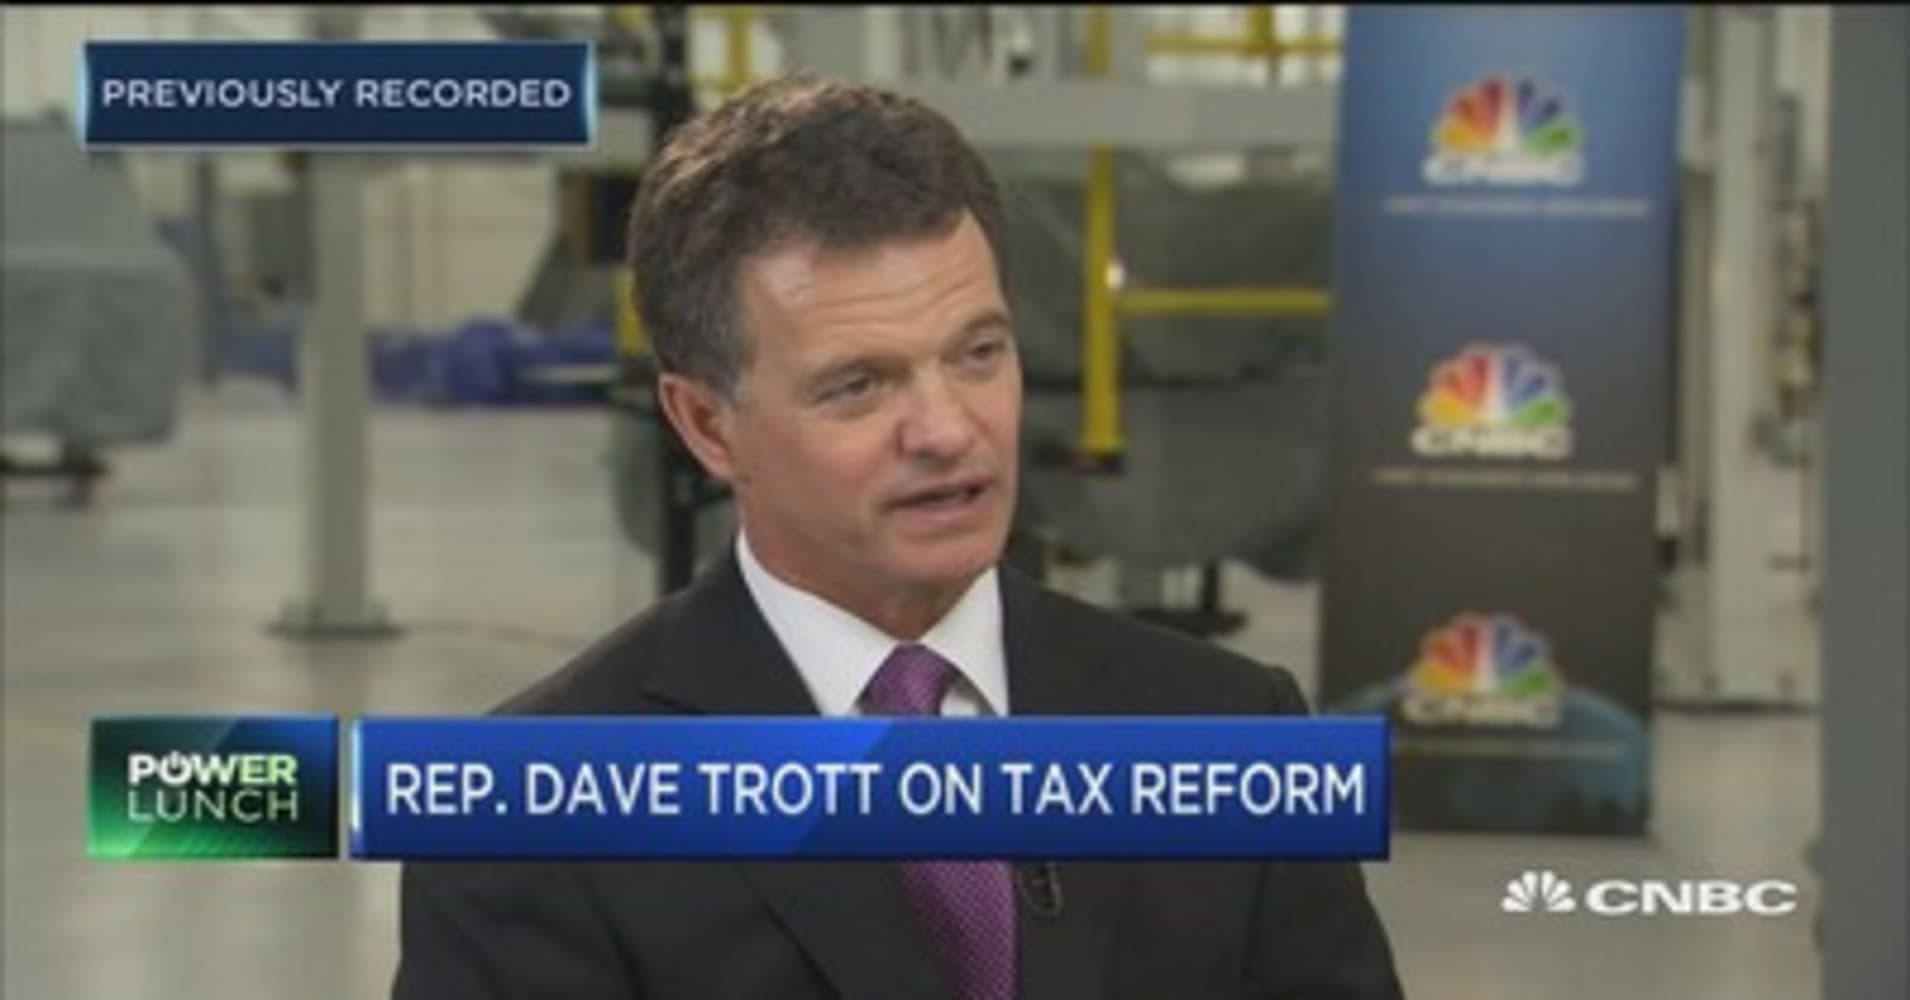 Rep. Dave Trott: 80% chance tax reform gets done by end of the year